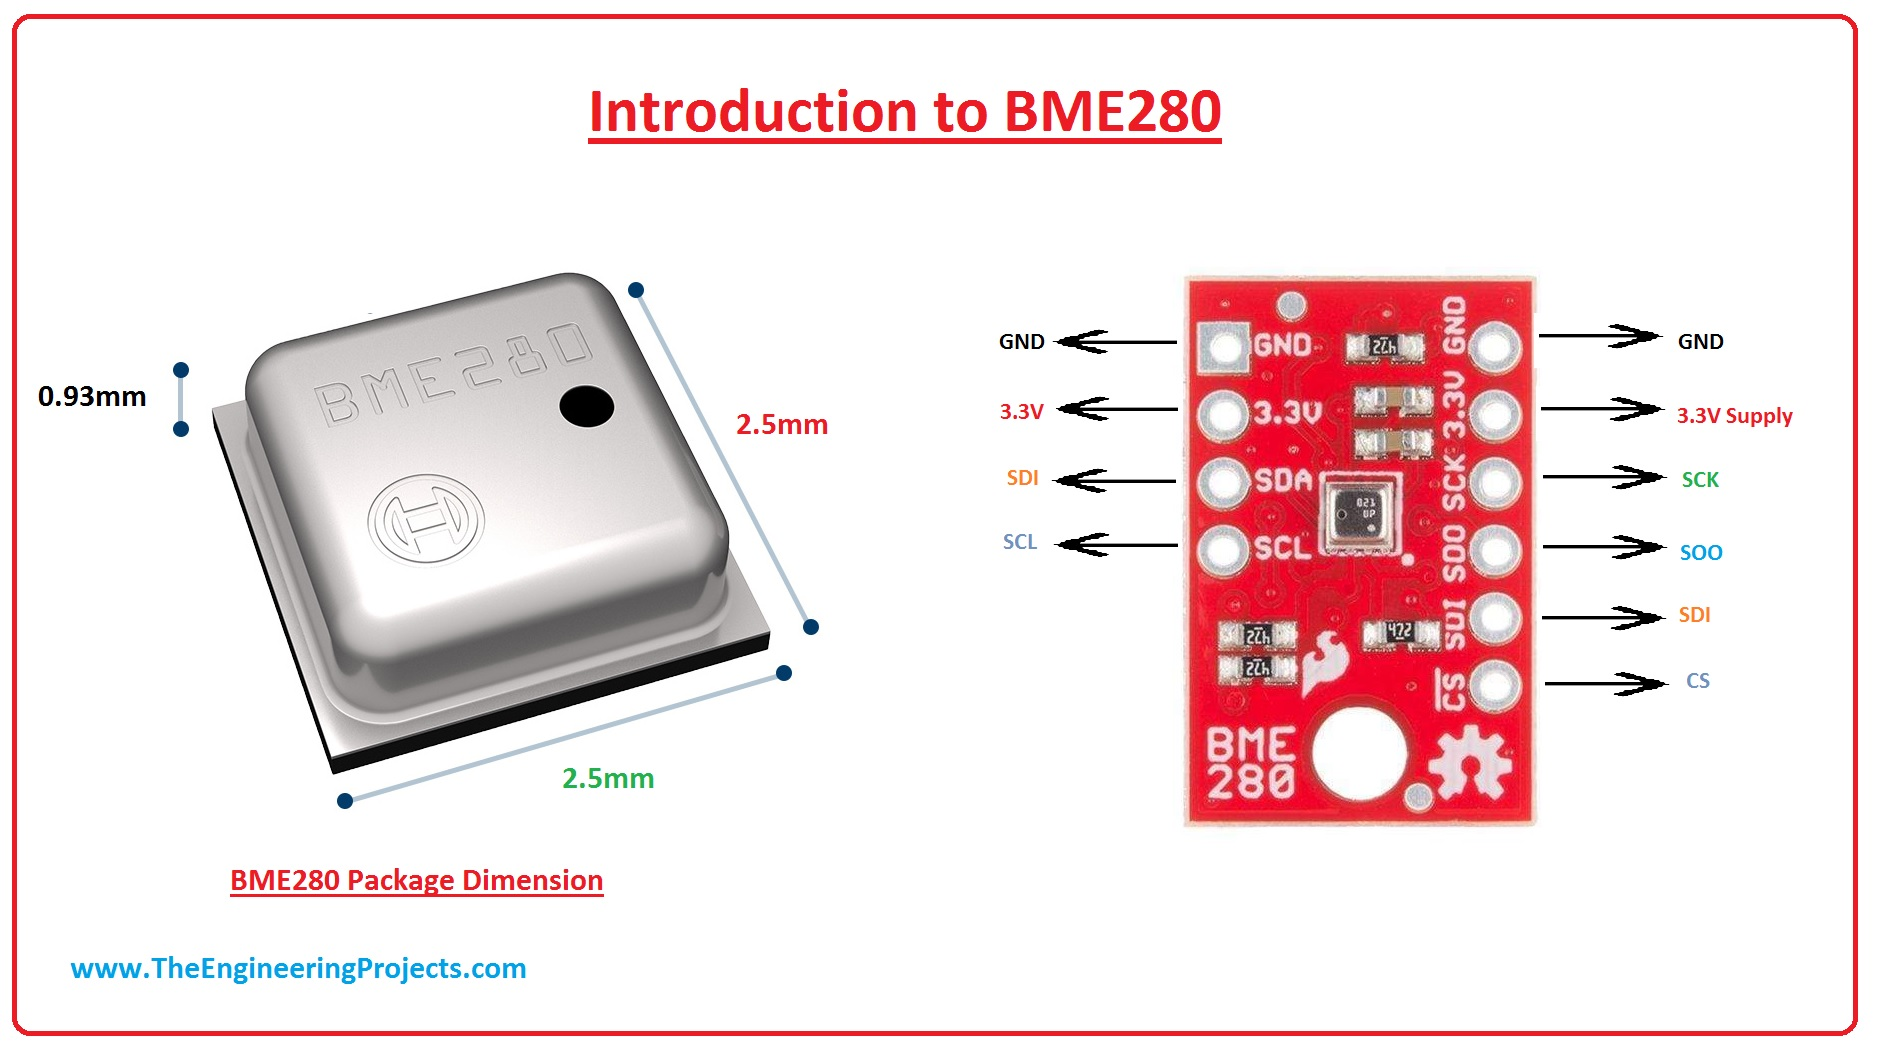 introduction to bme280, bme280 pinout,bme280 working,bme280 application, bme280 arduino interfacing,bme280